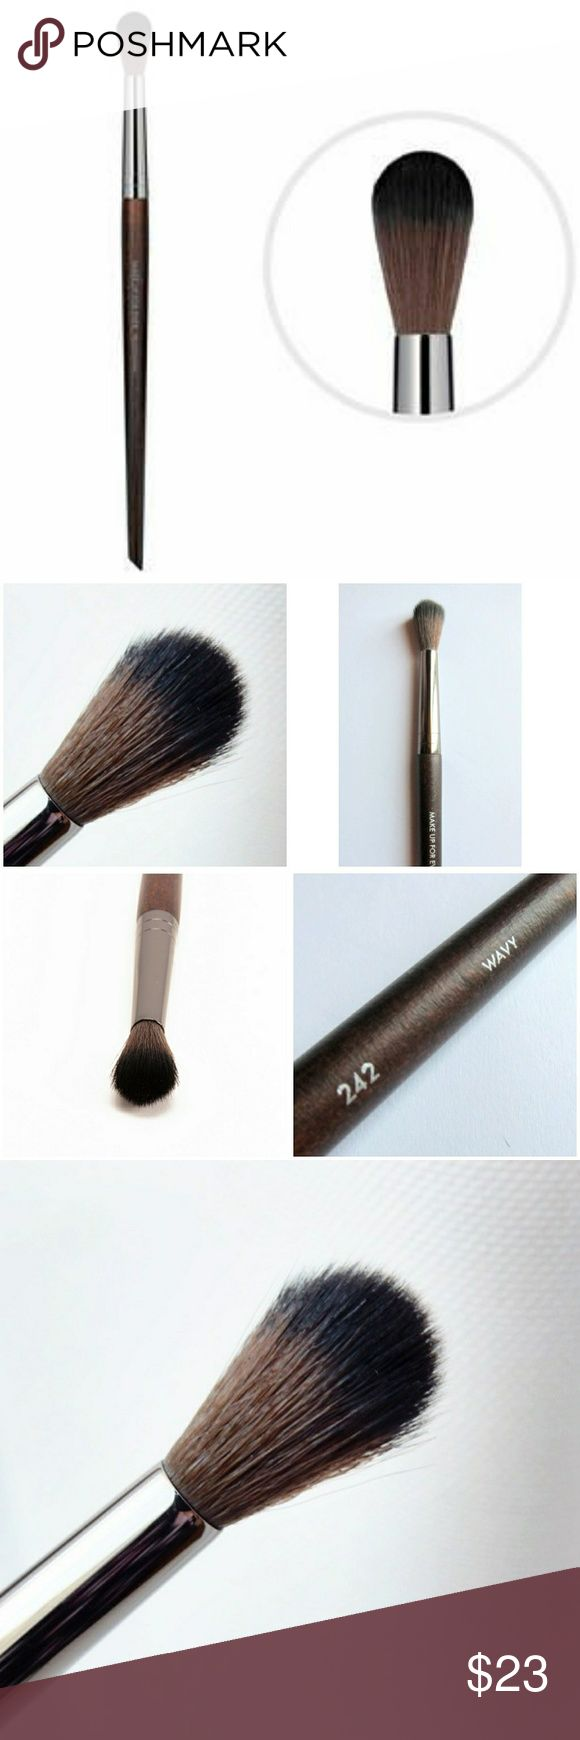 429 Best Makeup Brushes Images On Pinterest